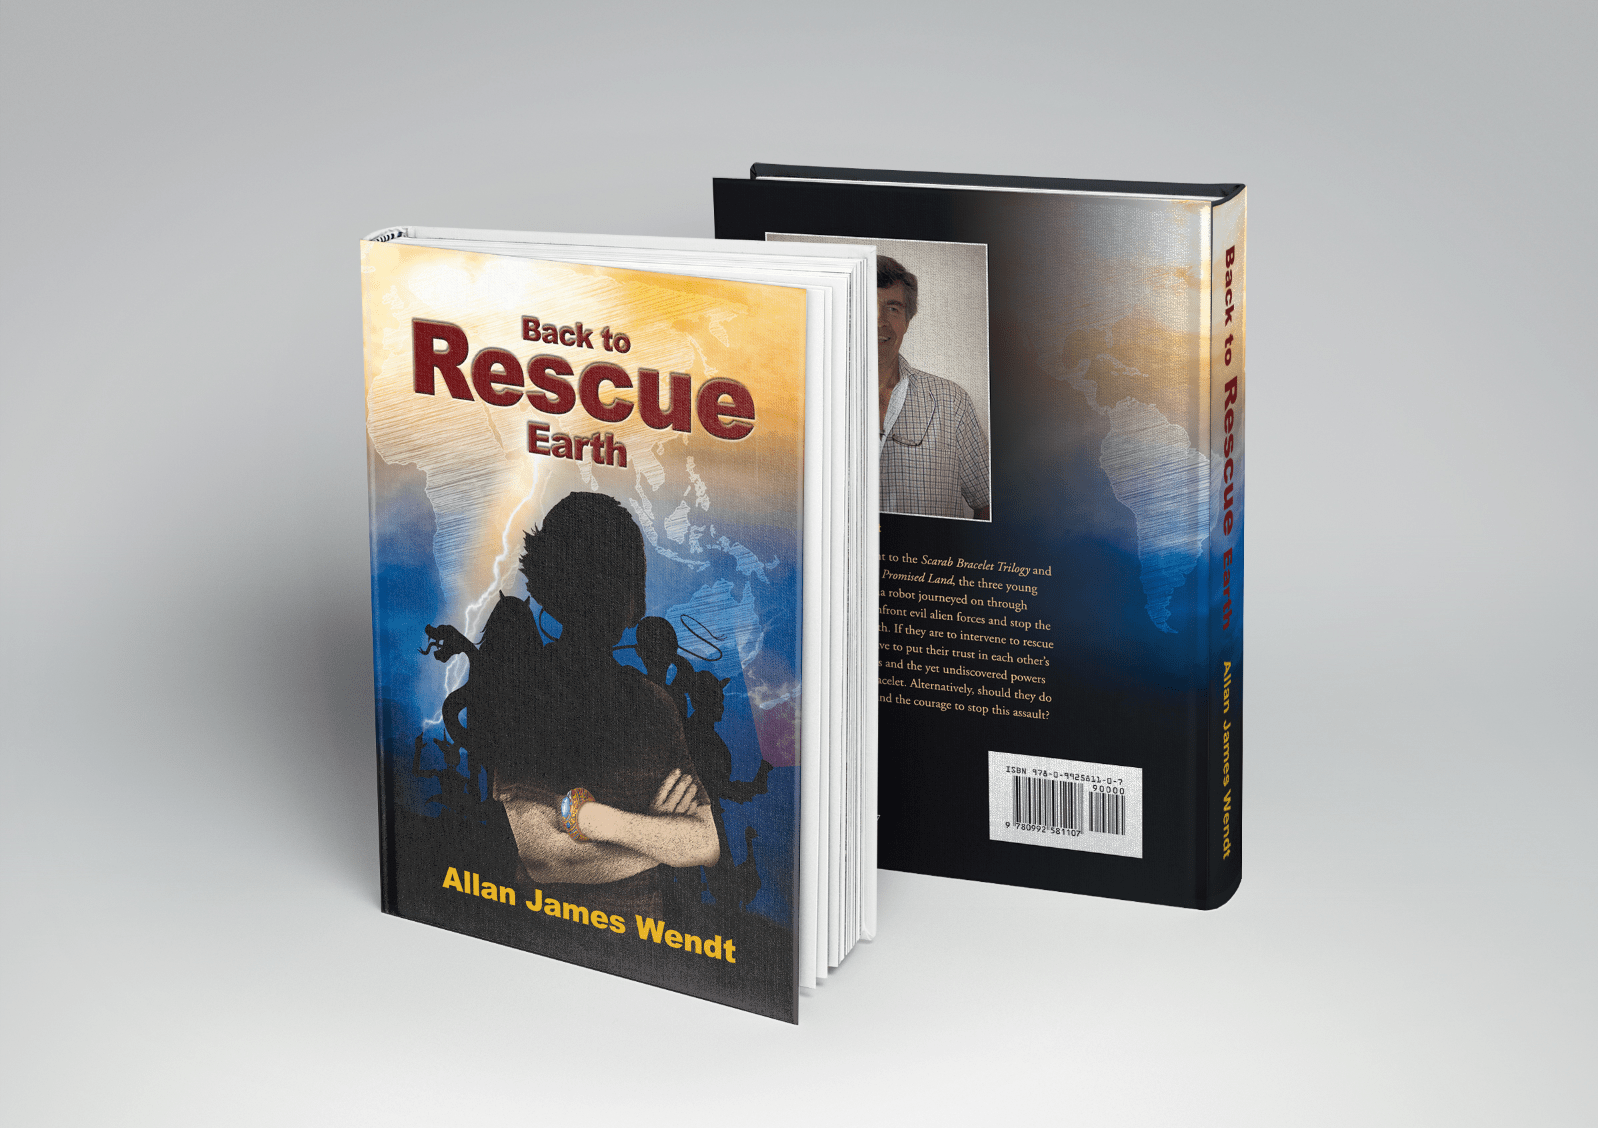 Back to Rescue Earth book